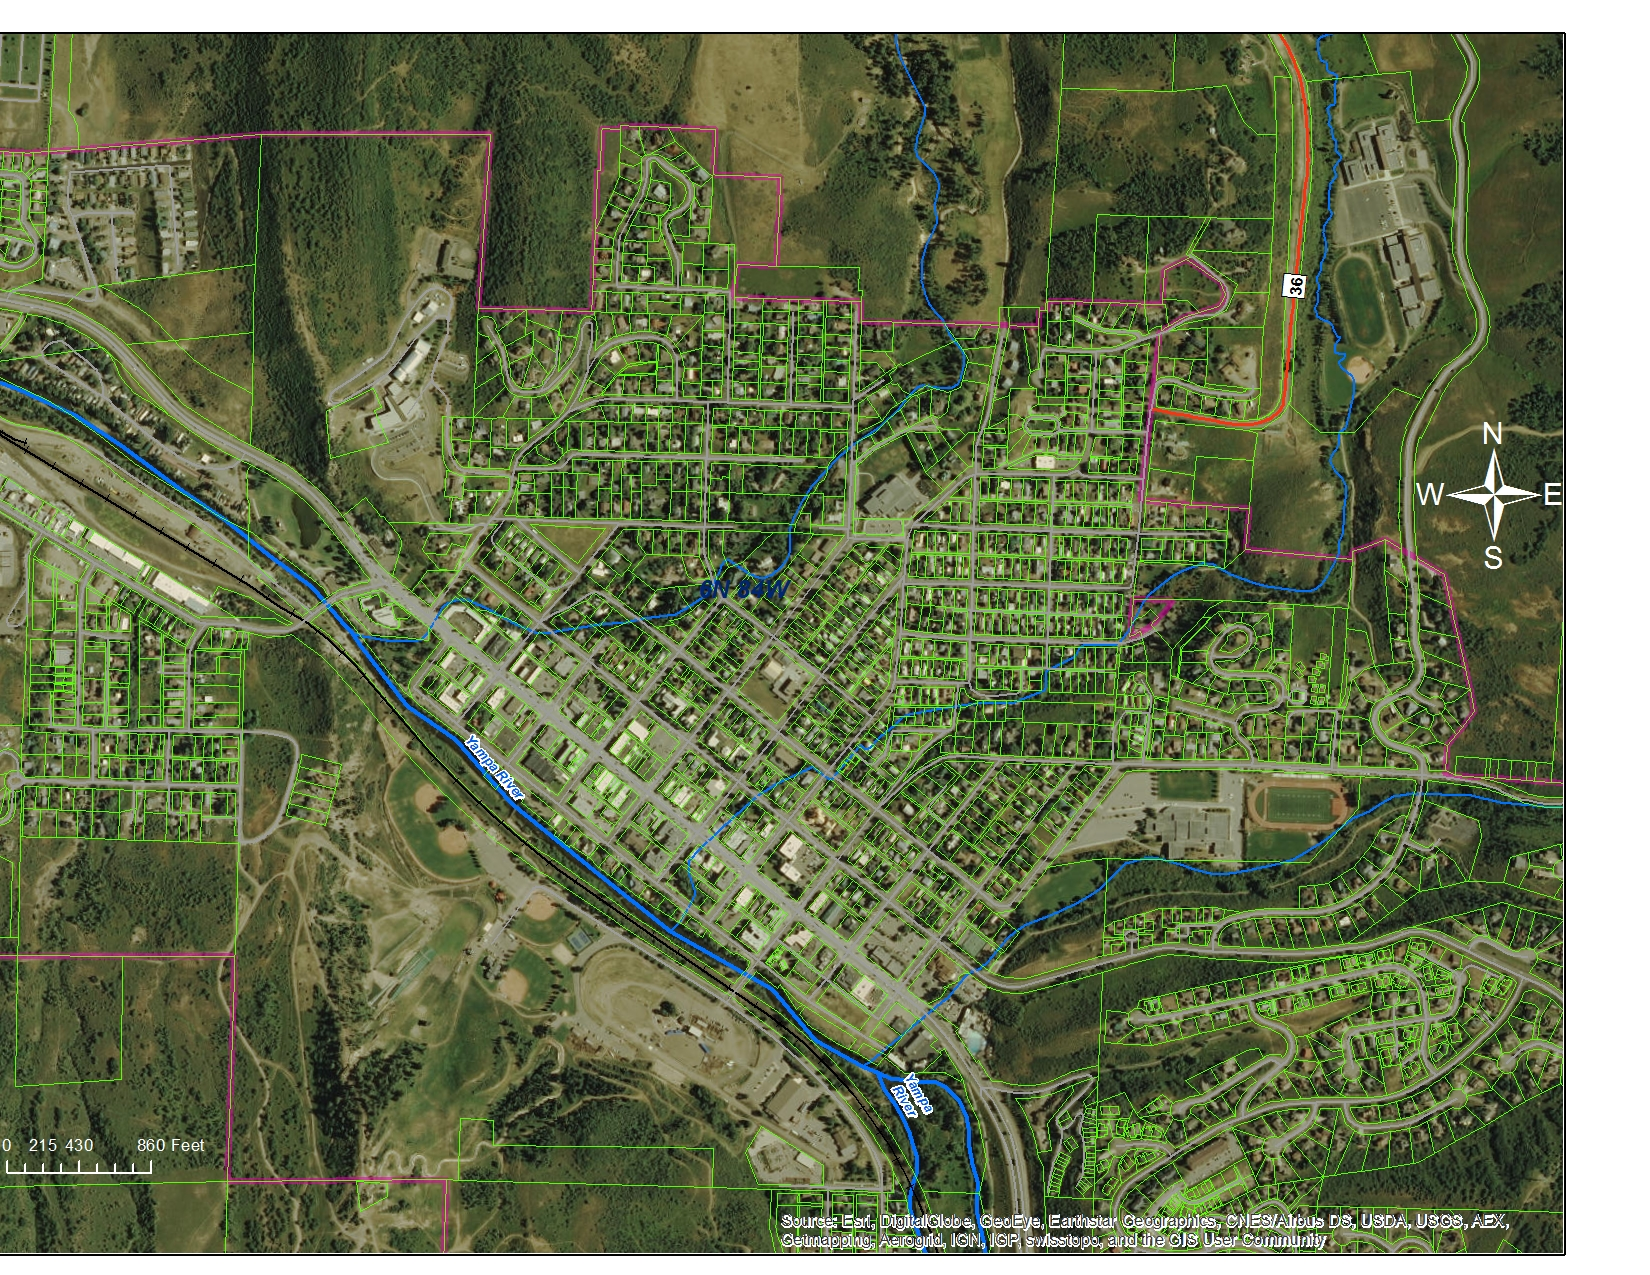 Map Of Steamboat Springs Colorado on eagle point resort vail colorado, luxury steamboat springs colorado, map of victoria british columbia, map resort ski steamboat colorado, trail map steamboat springs colorado, map of saratoga springs ny, elevation of steamboat springs colorado,